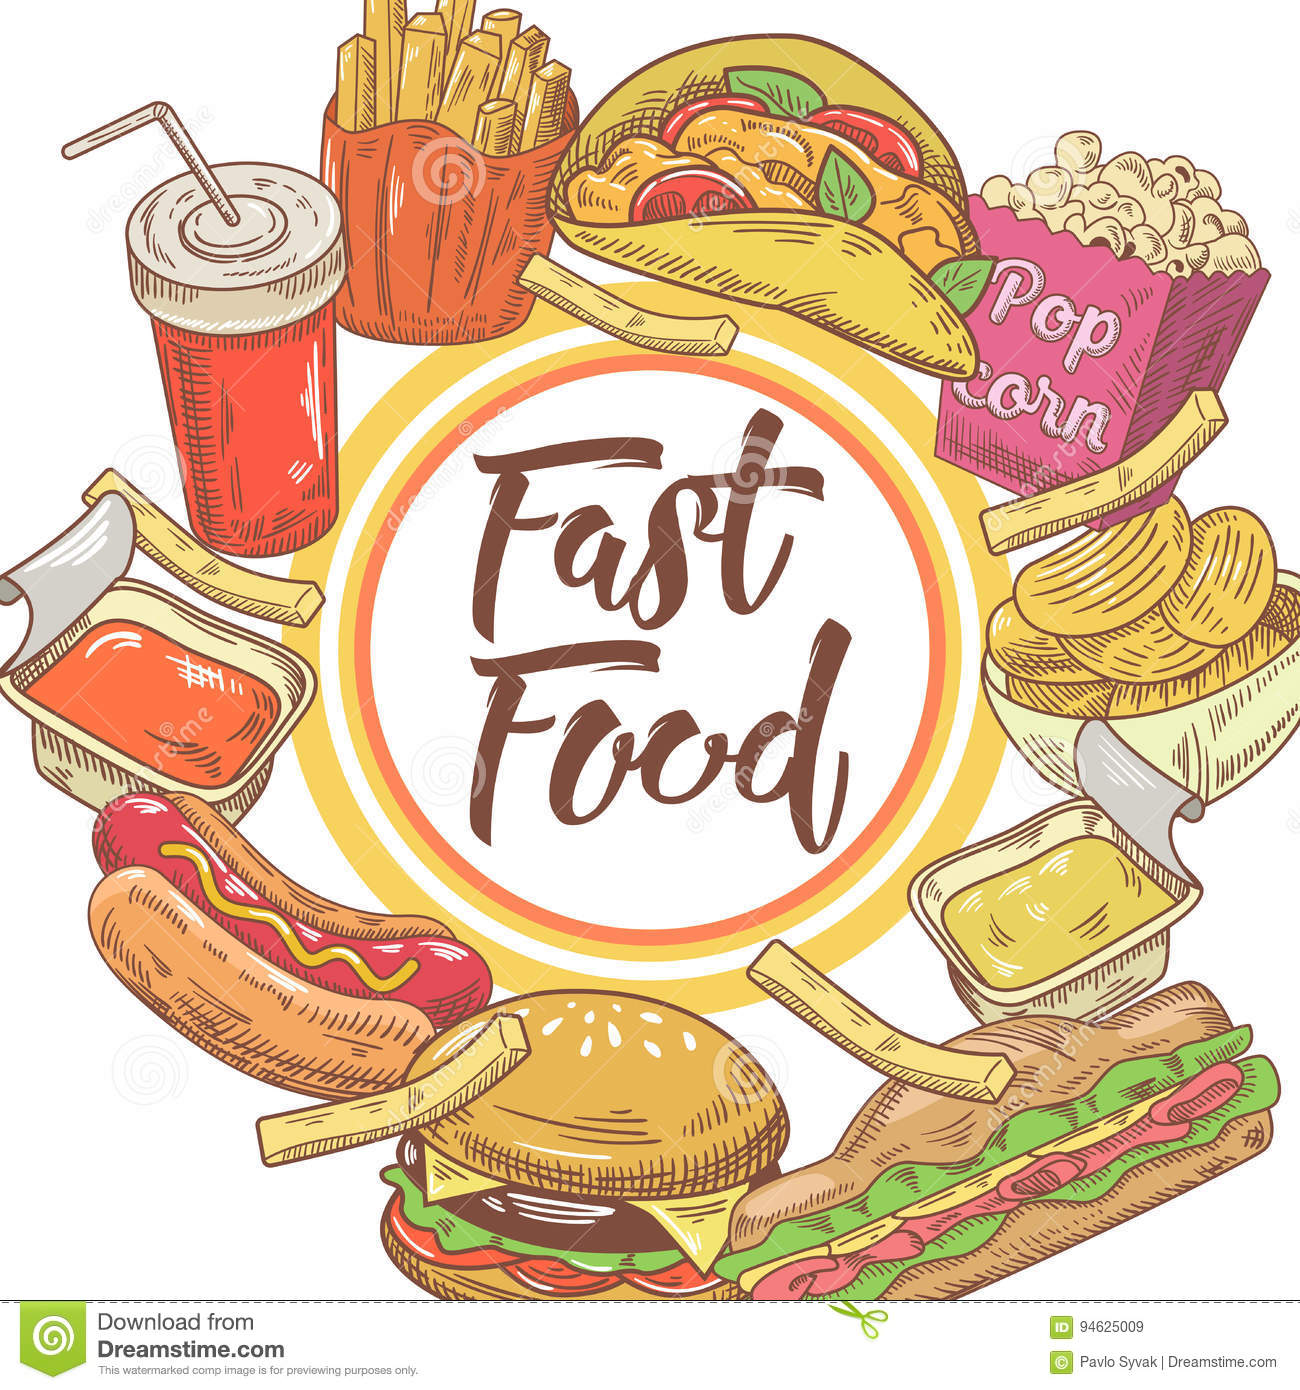 Fast Food Hand Drawn Design with Sandwich, Fries and Burger. Unhealthy Eating